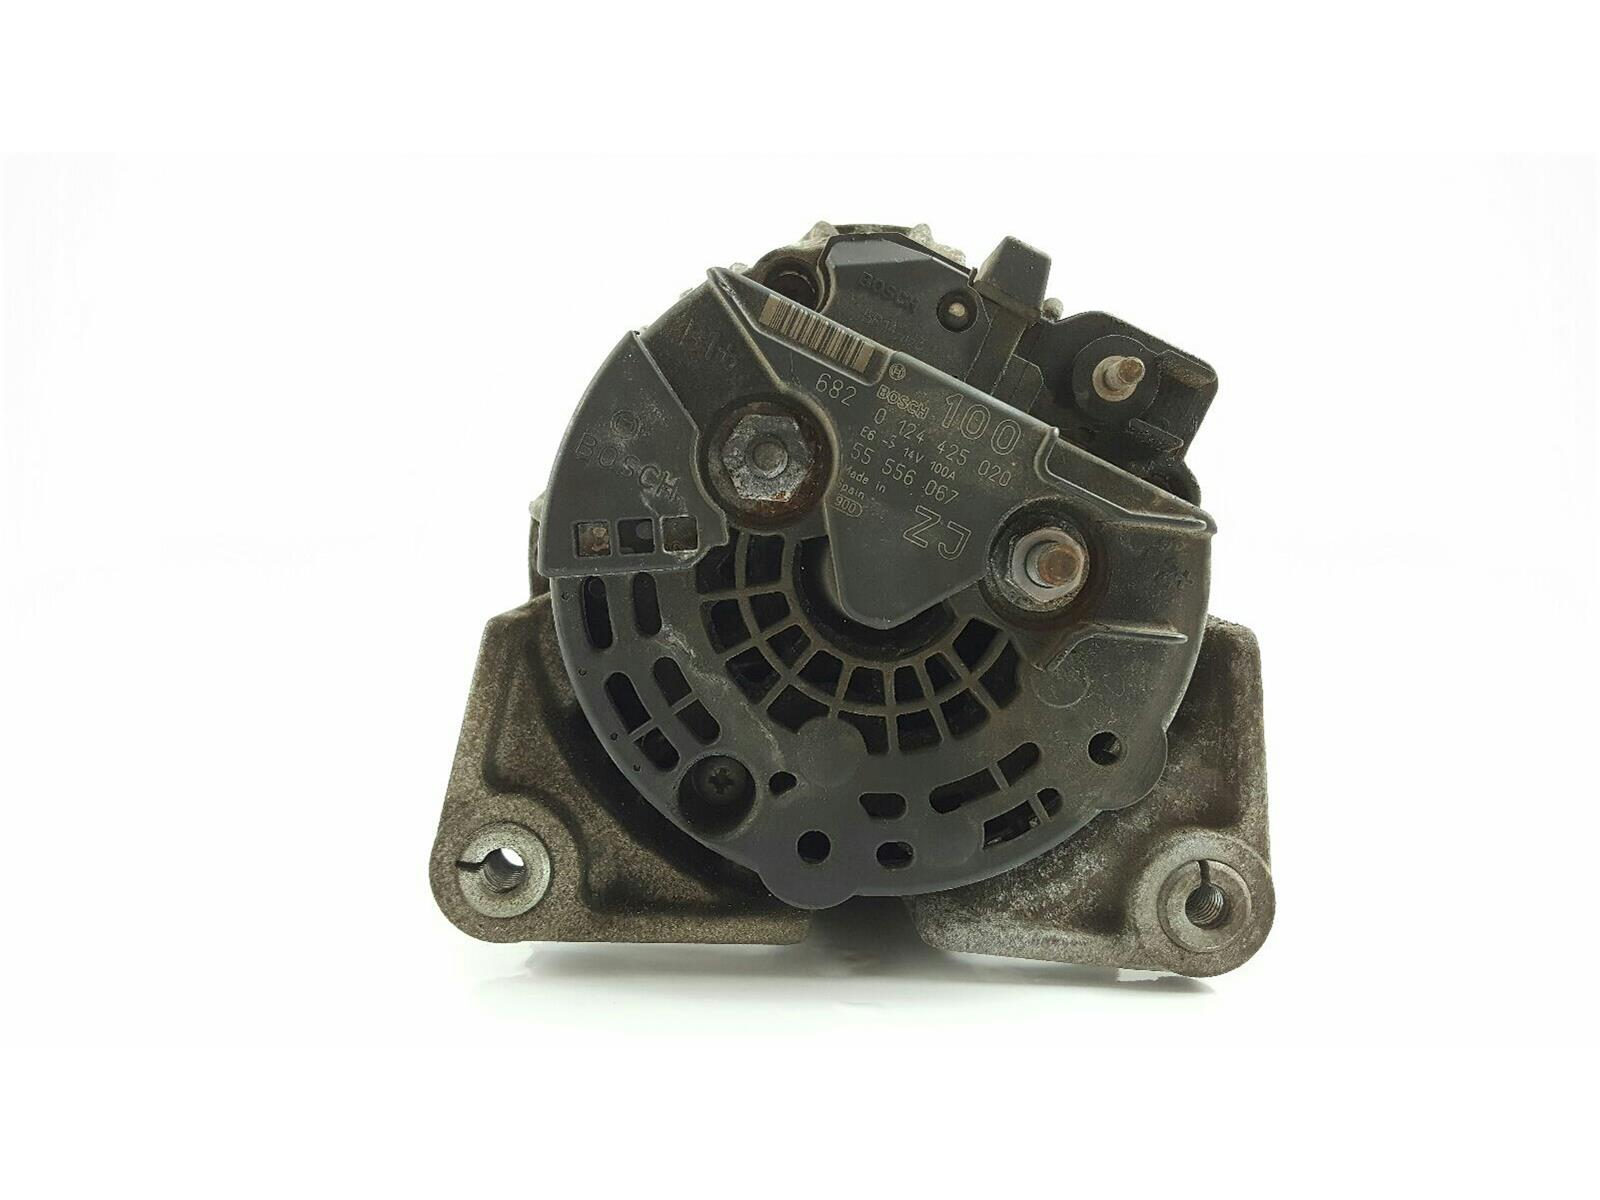 Astra h alternator wiring diagram john deere 5410 wiring diagram vauxhall astra 2004 to 2006 alternator petrol manual for sale f222e31d 4548 484a bd50 asfbconference2016 Image collections